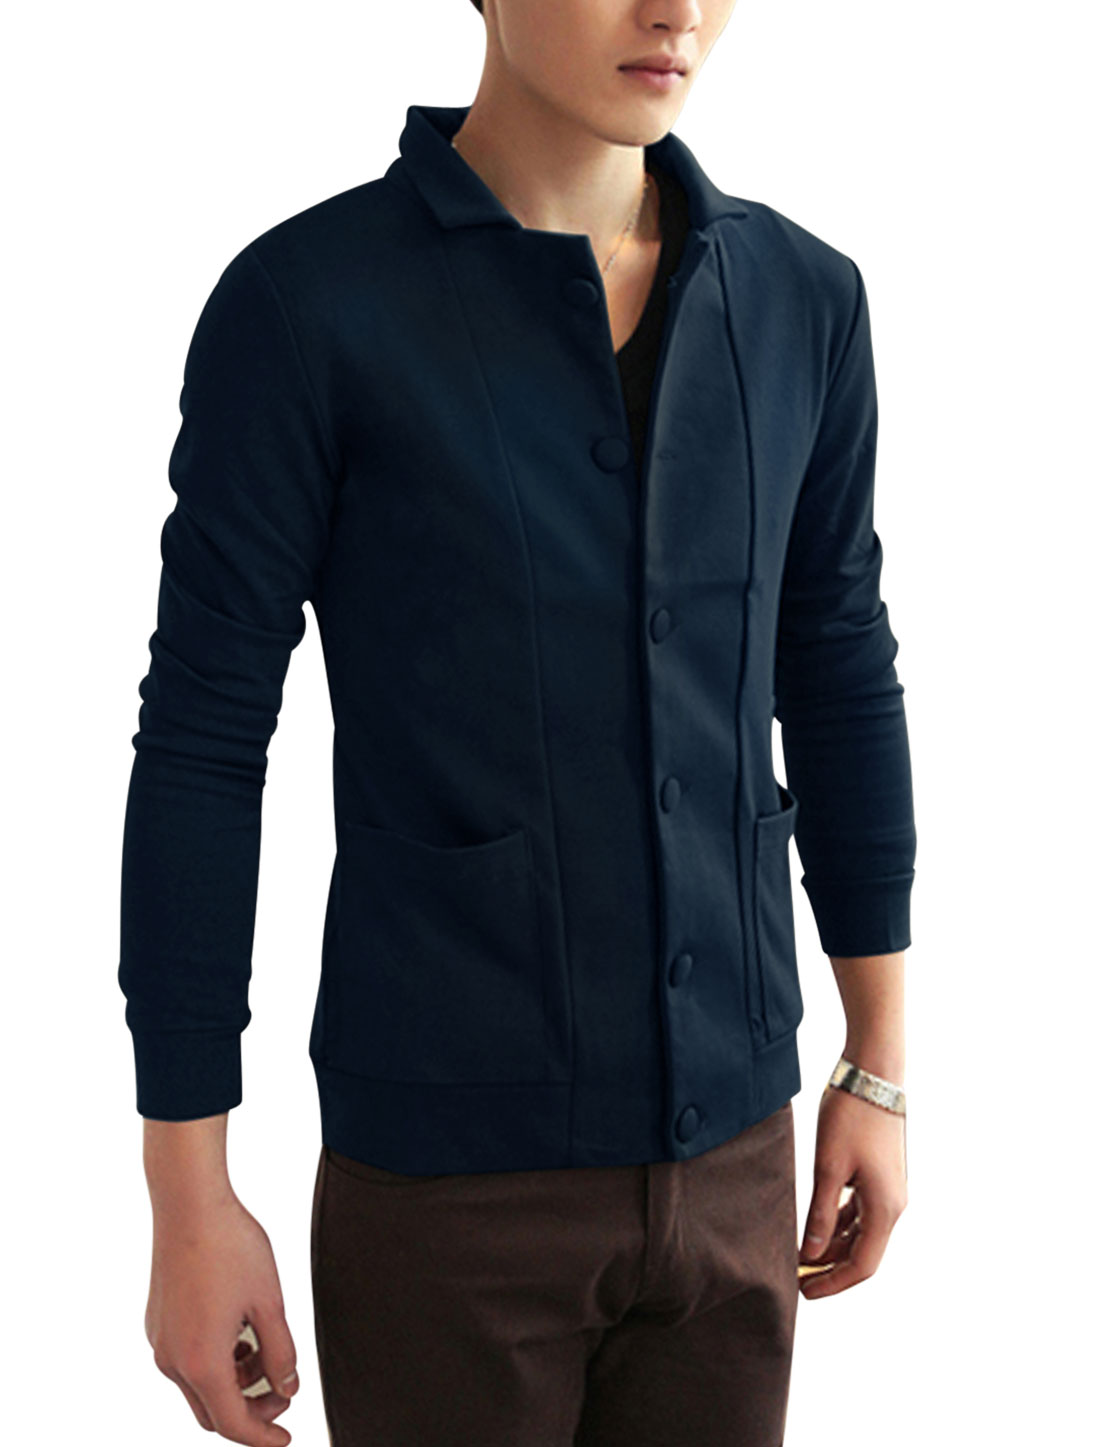 Men Turn Down Collar Cozy Fit Jacket Navy Blue M